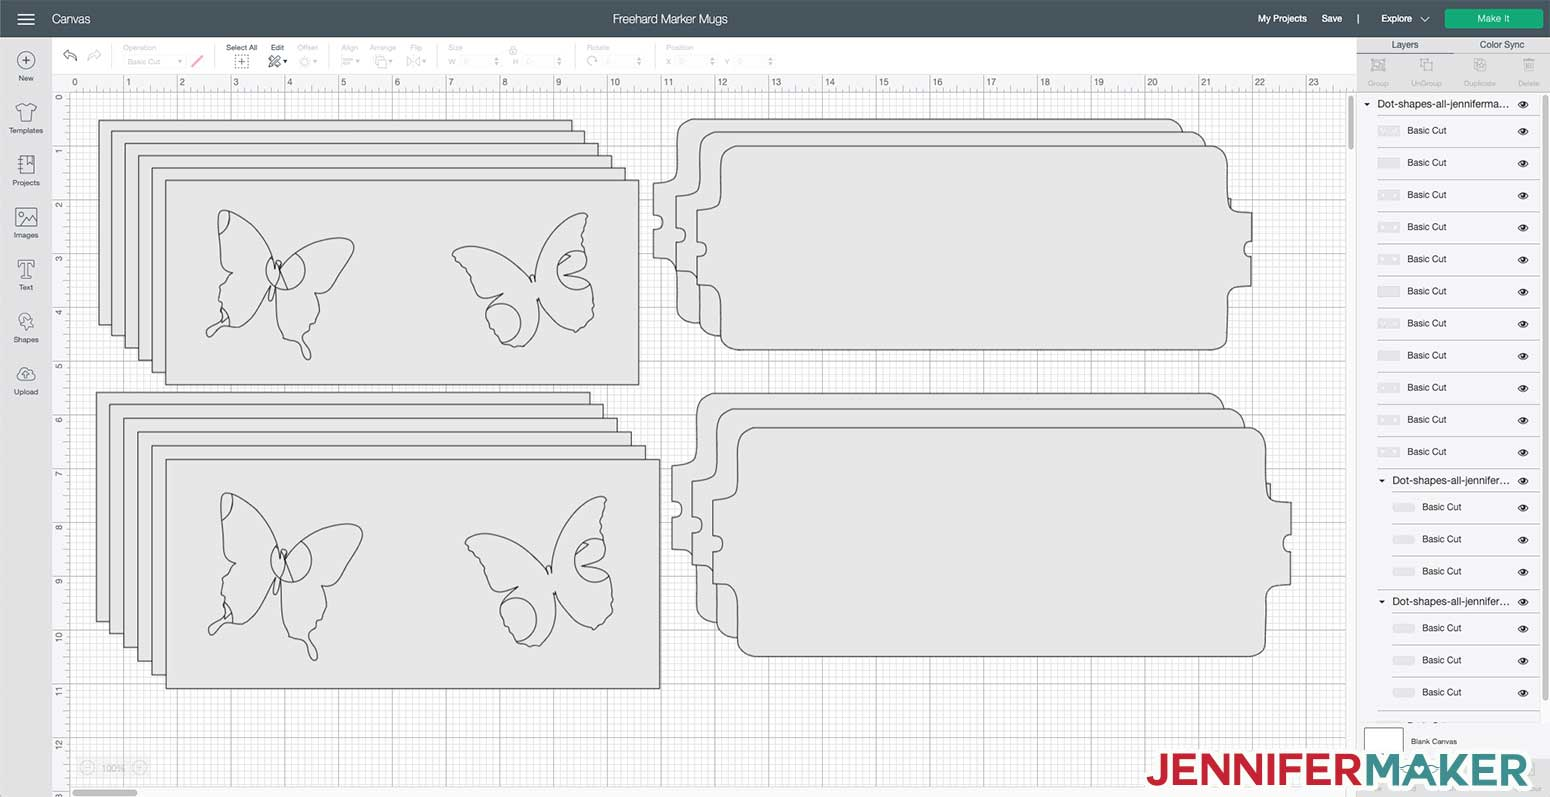 Dot butterfly SVG cut file uploaded to Cricut Design Space to make a DIY personalized mug with Infusible Ink markers